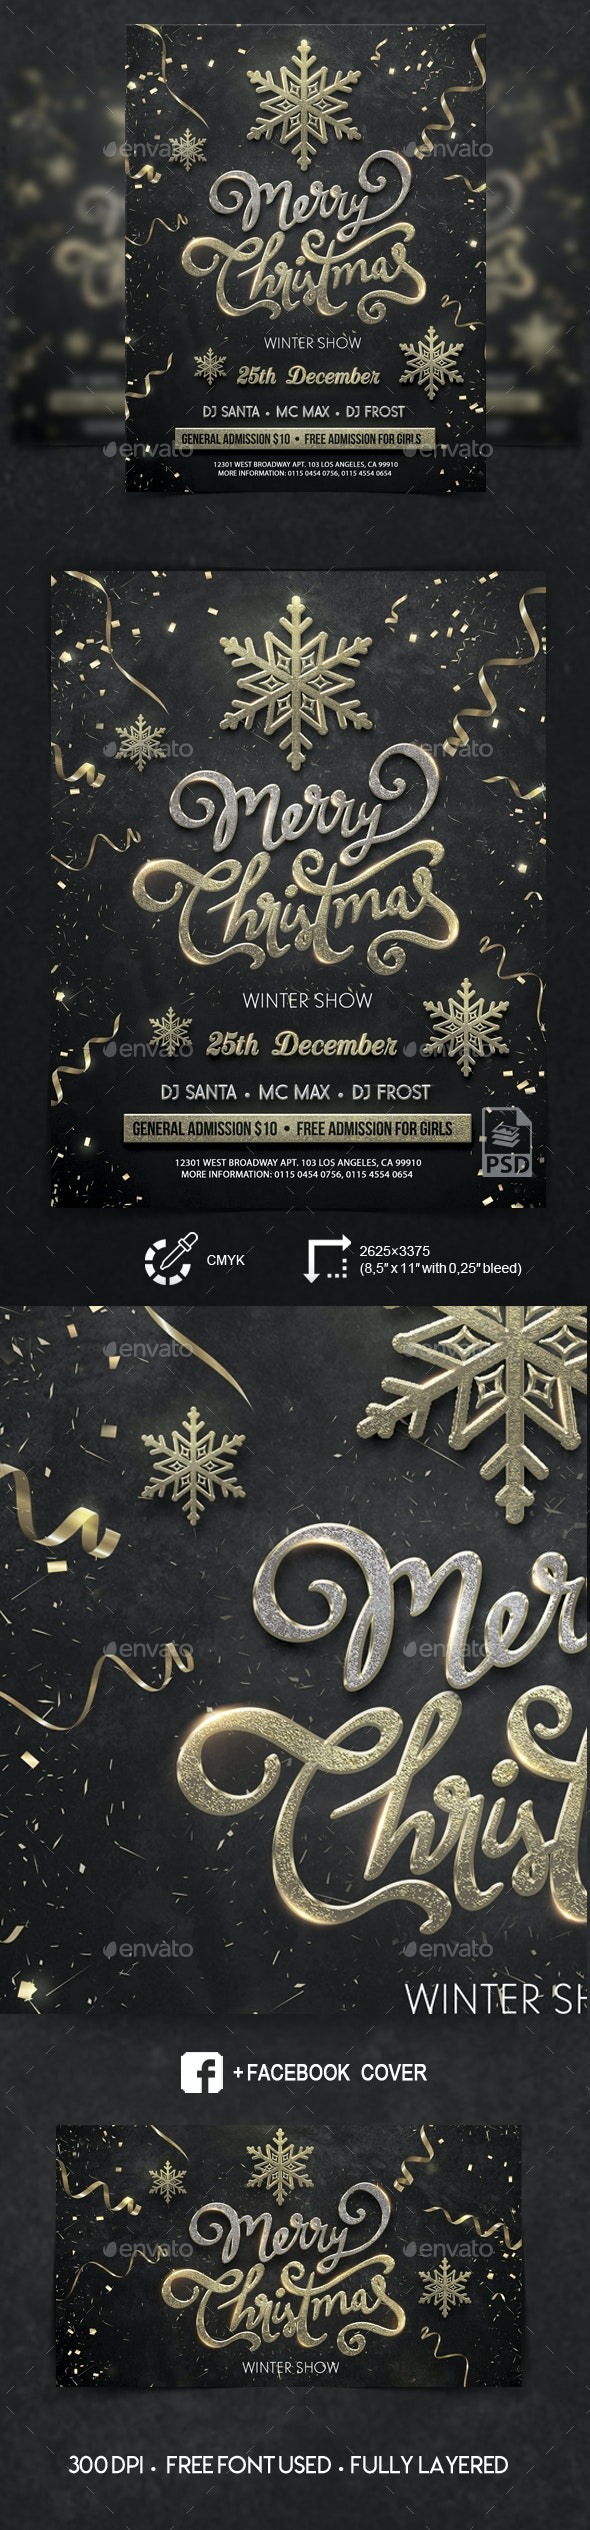 Merry Christmas - PSD Flyer Template - Events Flyers